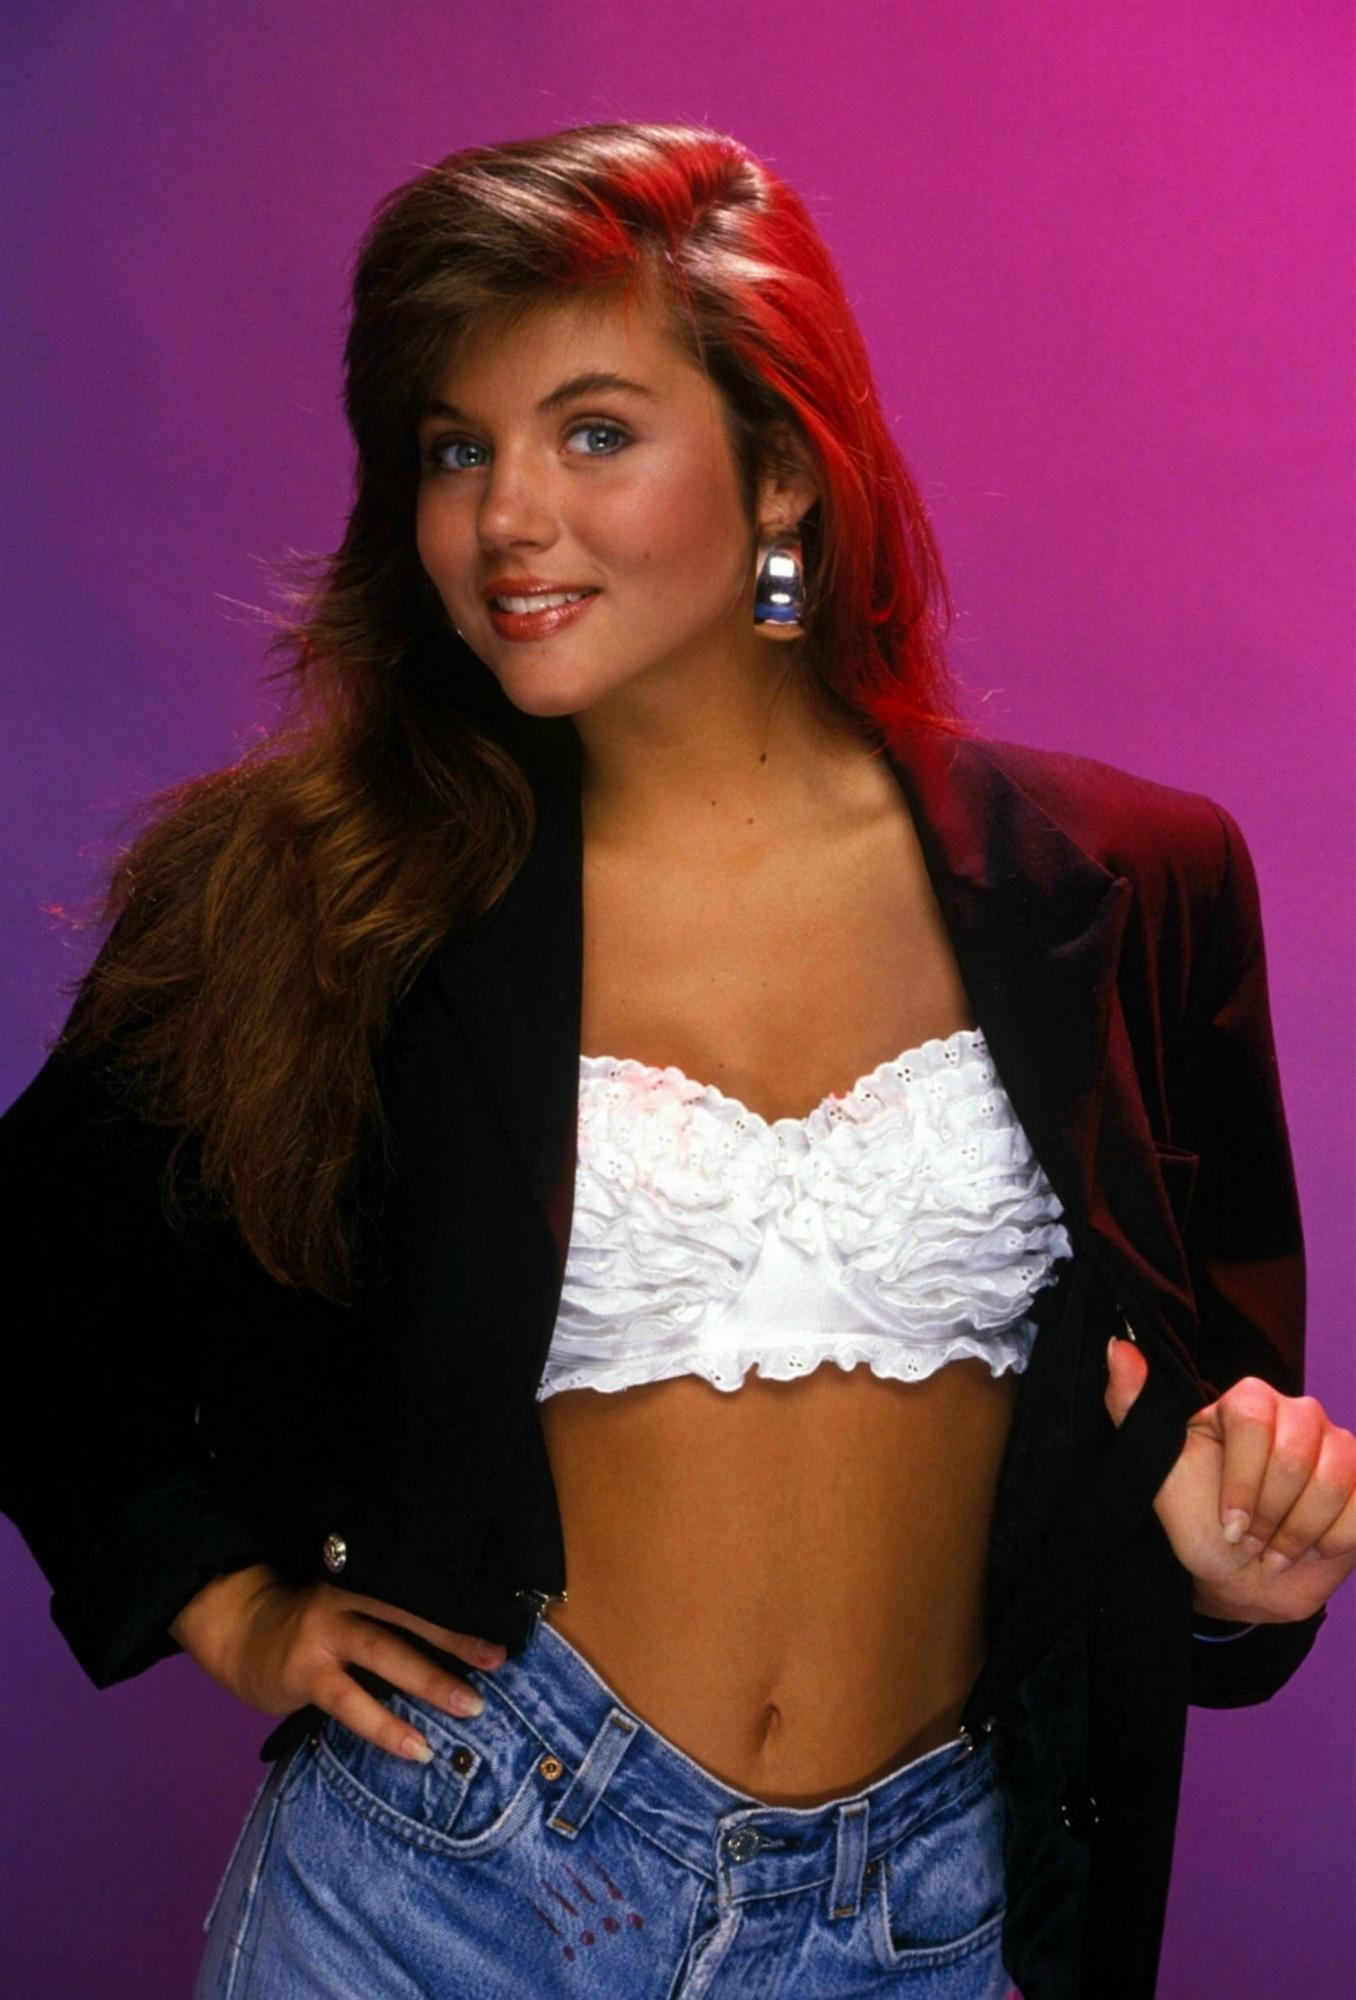 Amber Thiessen Naked tiffani thiessen nude - 3 pictures: rating 8.81/10